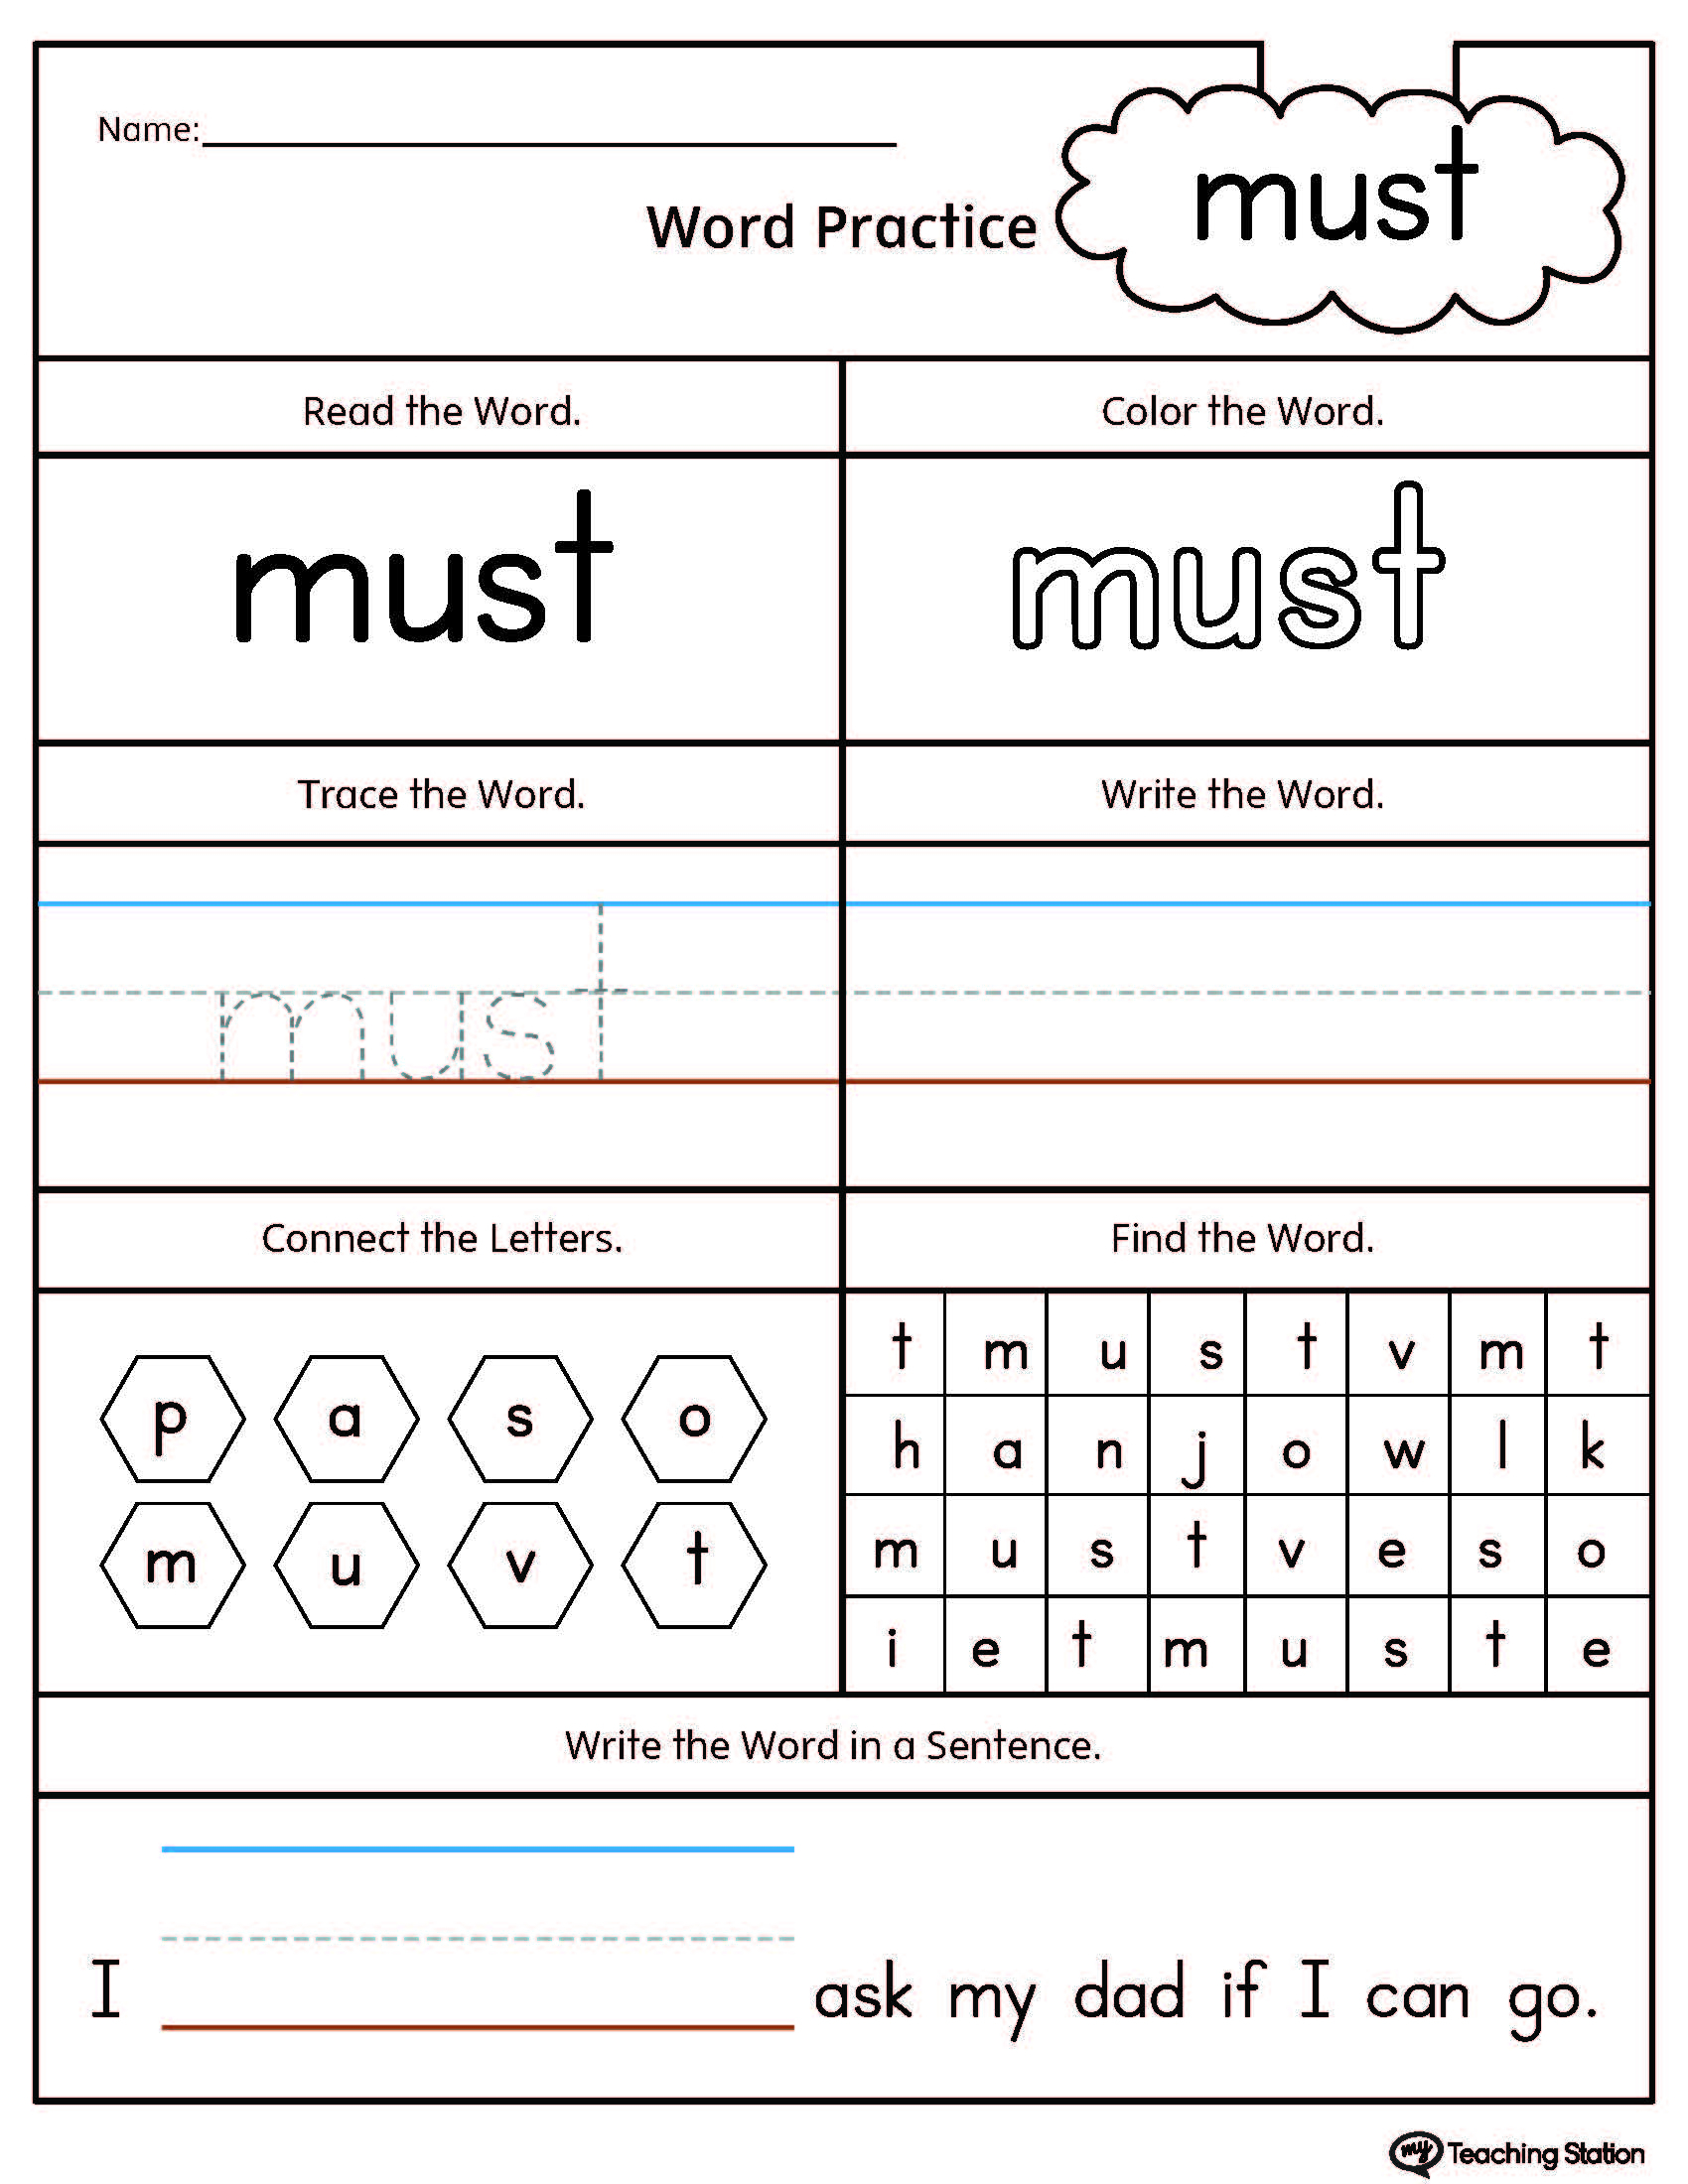 High-Frequency Word Must Printable Worksheet | Myteachingstation | Printable Sight Word Worksheets